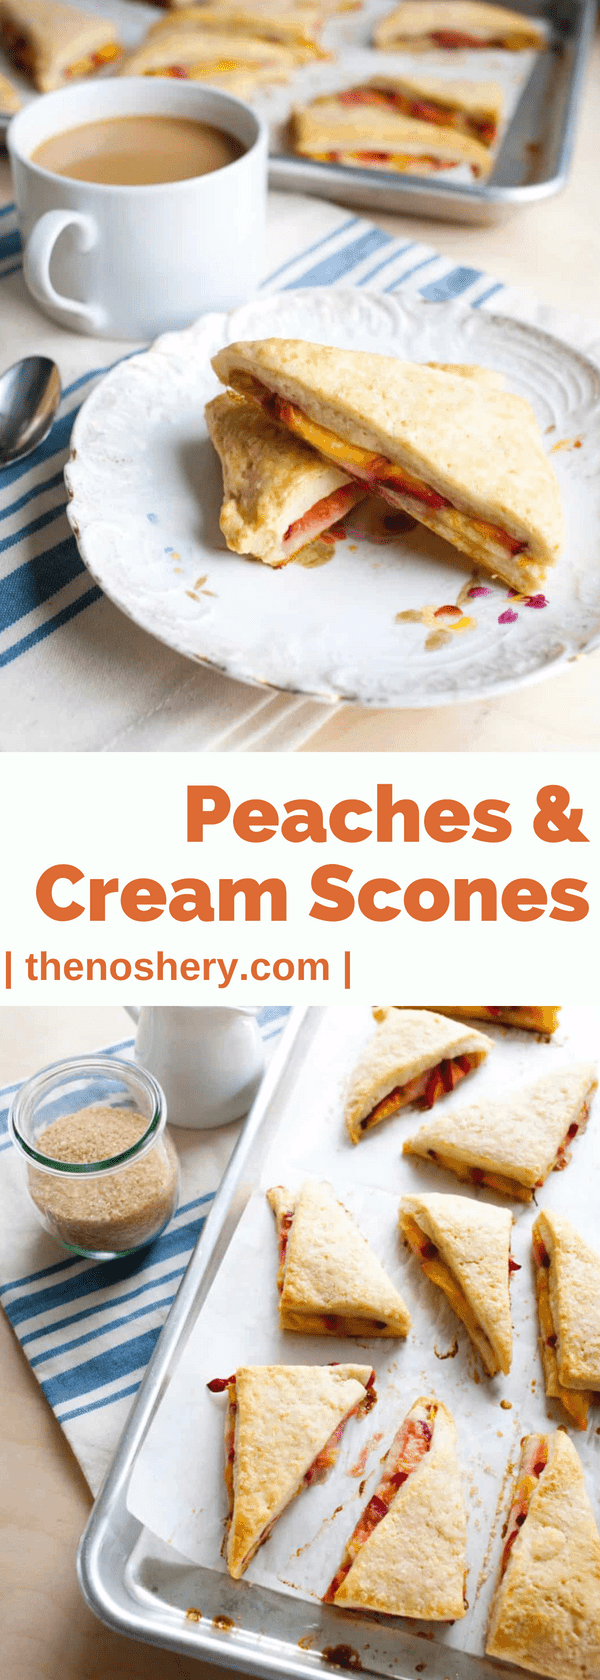 Peaches & Cream Scones | Tender crumbly cream scones stuff with sweet ripe peaches. The perfect start to a morning. | The Noshery